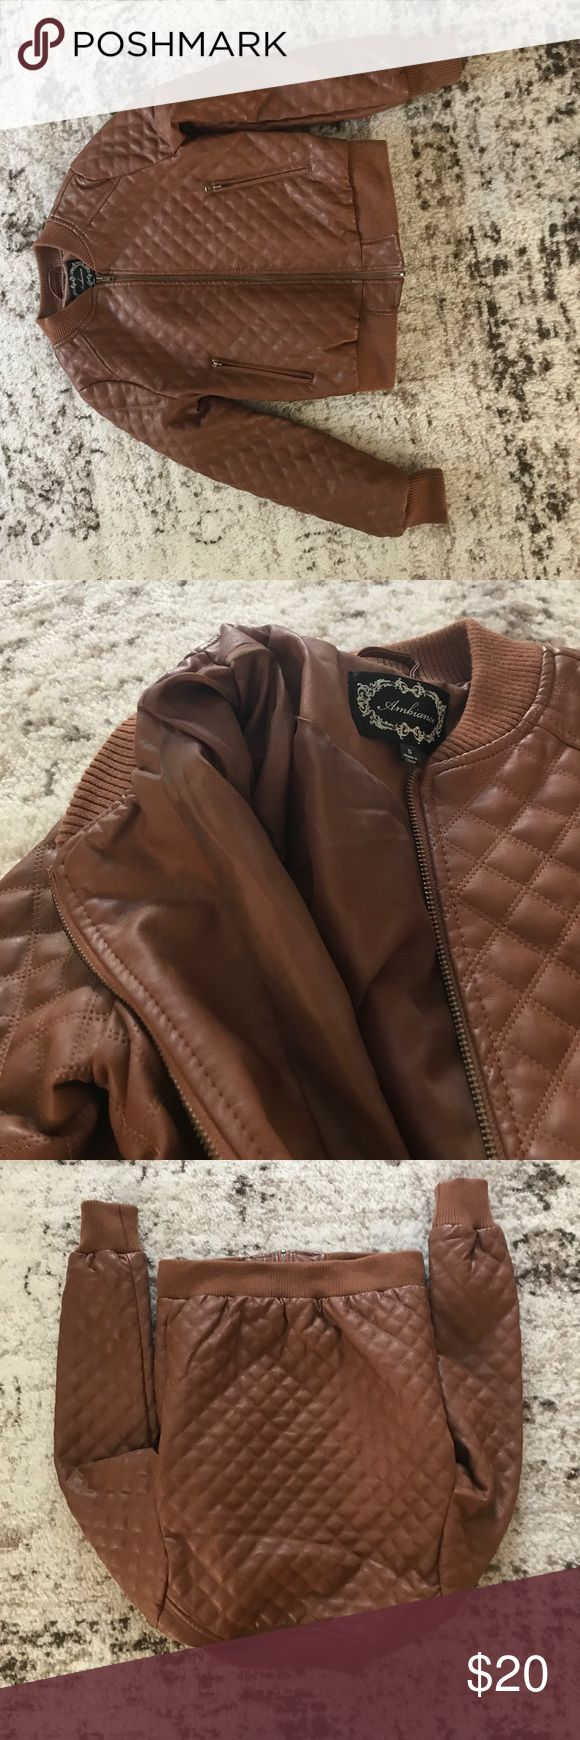 Faux Leather jacket quilted camel color Faux Leather jacket quilted camel color this jacket looks real it doesn't look fake at all it is great as a year-round jacket nice details quality small size A+ condition Jackets & Coats